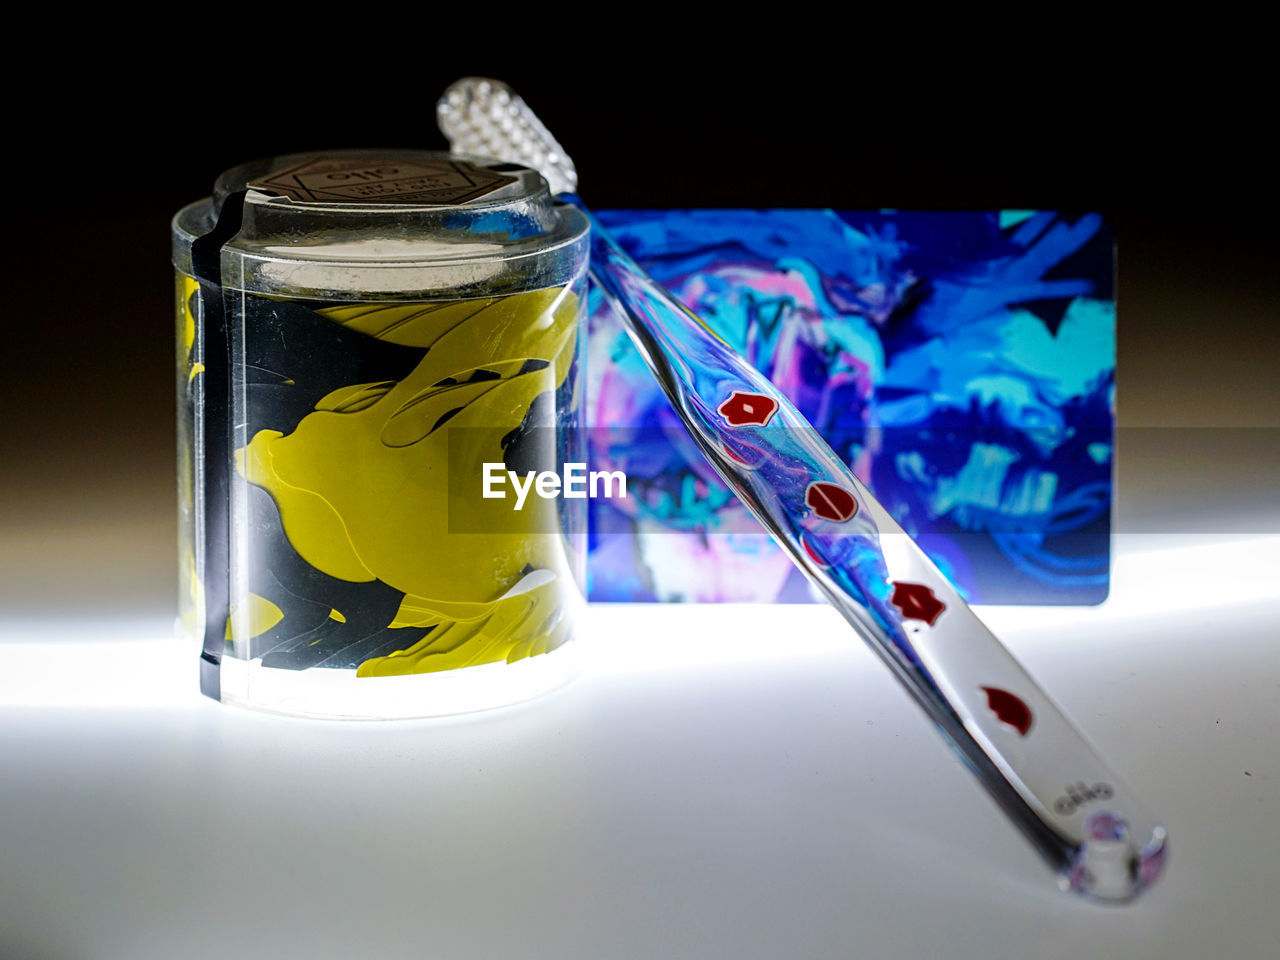 indoors, close-up, no people, blue, still life, container, studio shot, transparent, communication, glass - material, focus on foreground, jar, table, yellow, art and craft, multi colored, paint, high angle view, brush, paintbrush, black background